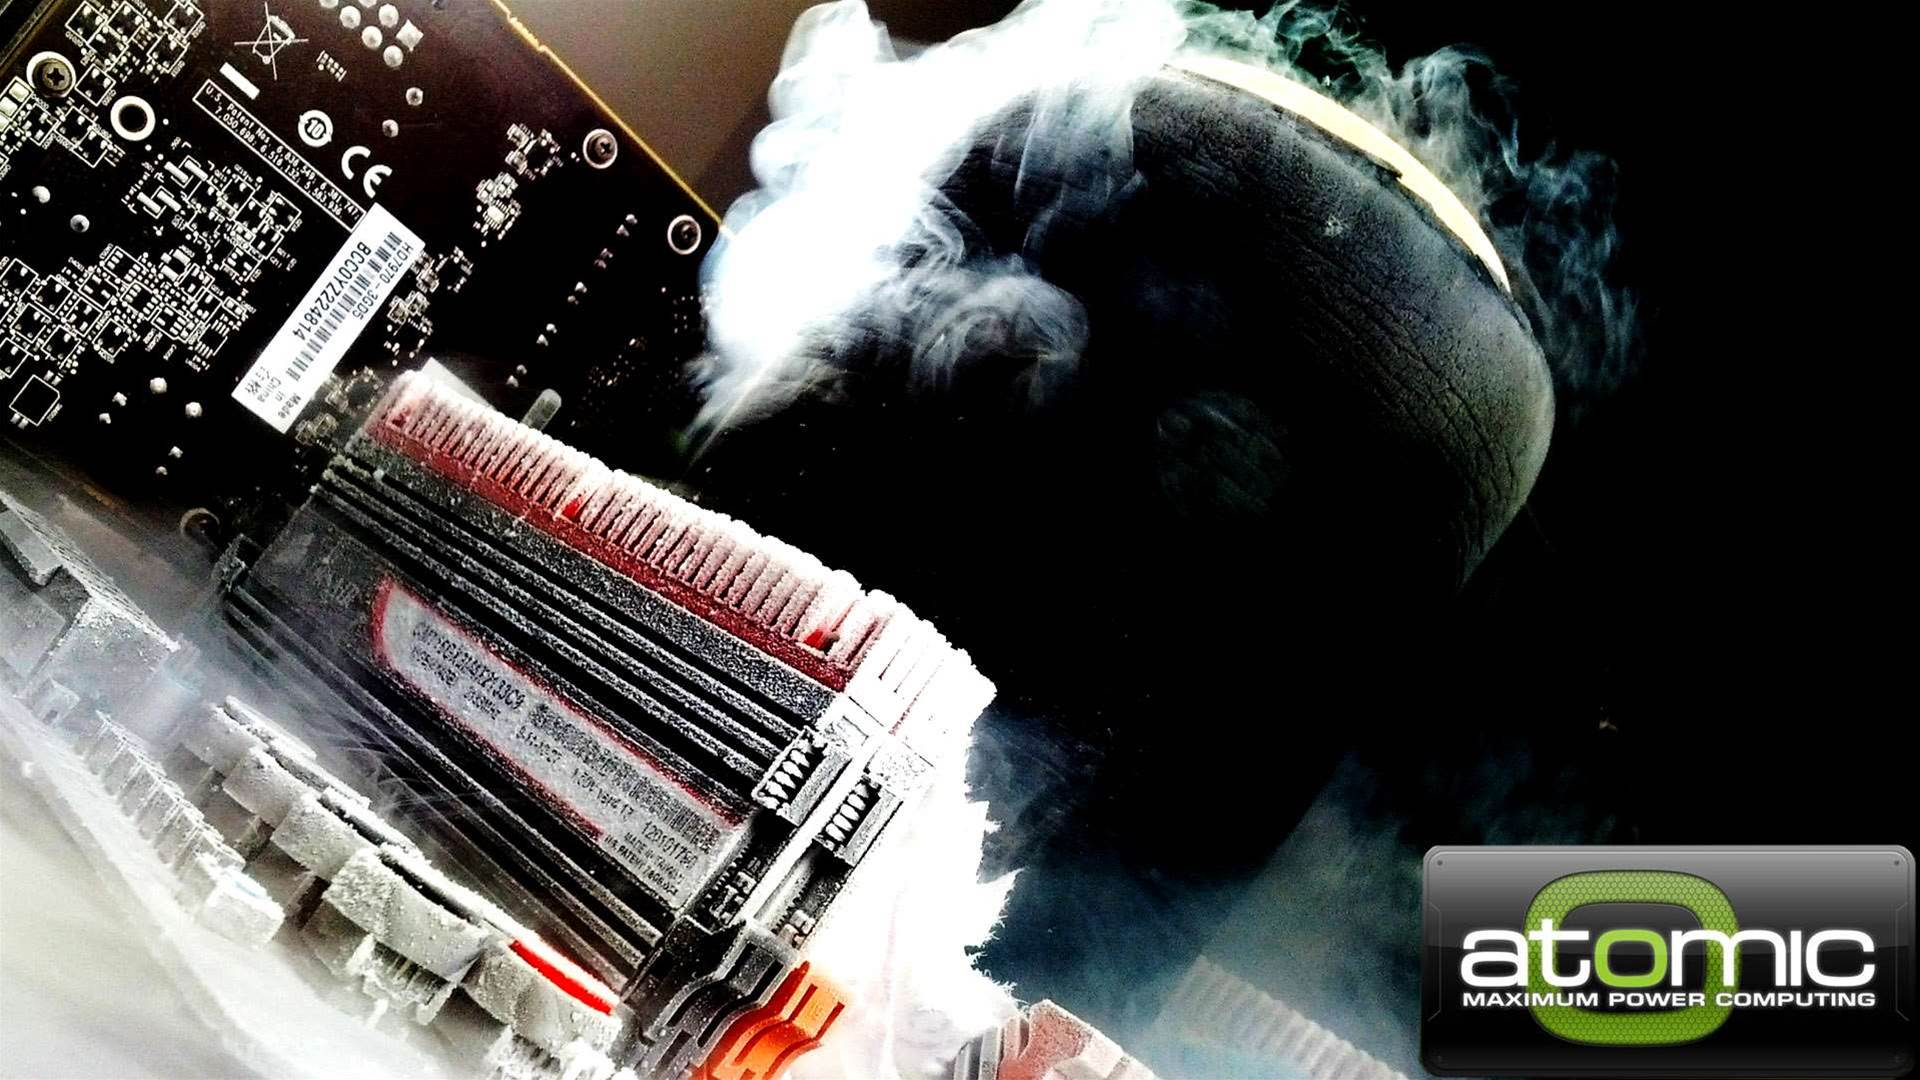 Come along to Atomic HQ for a night of EXTREME overclocking!